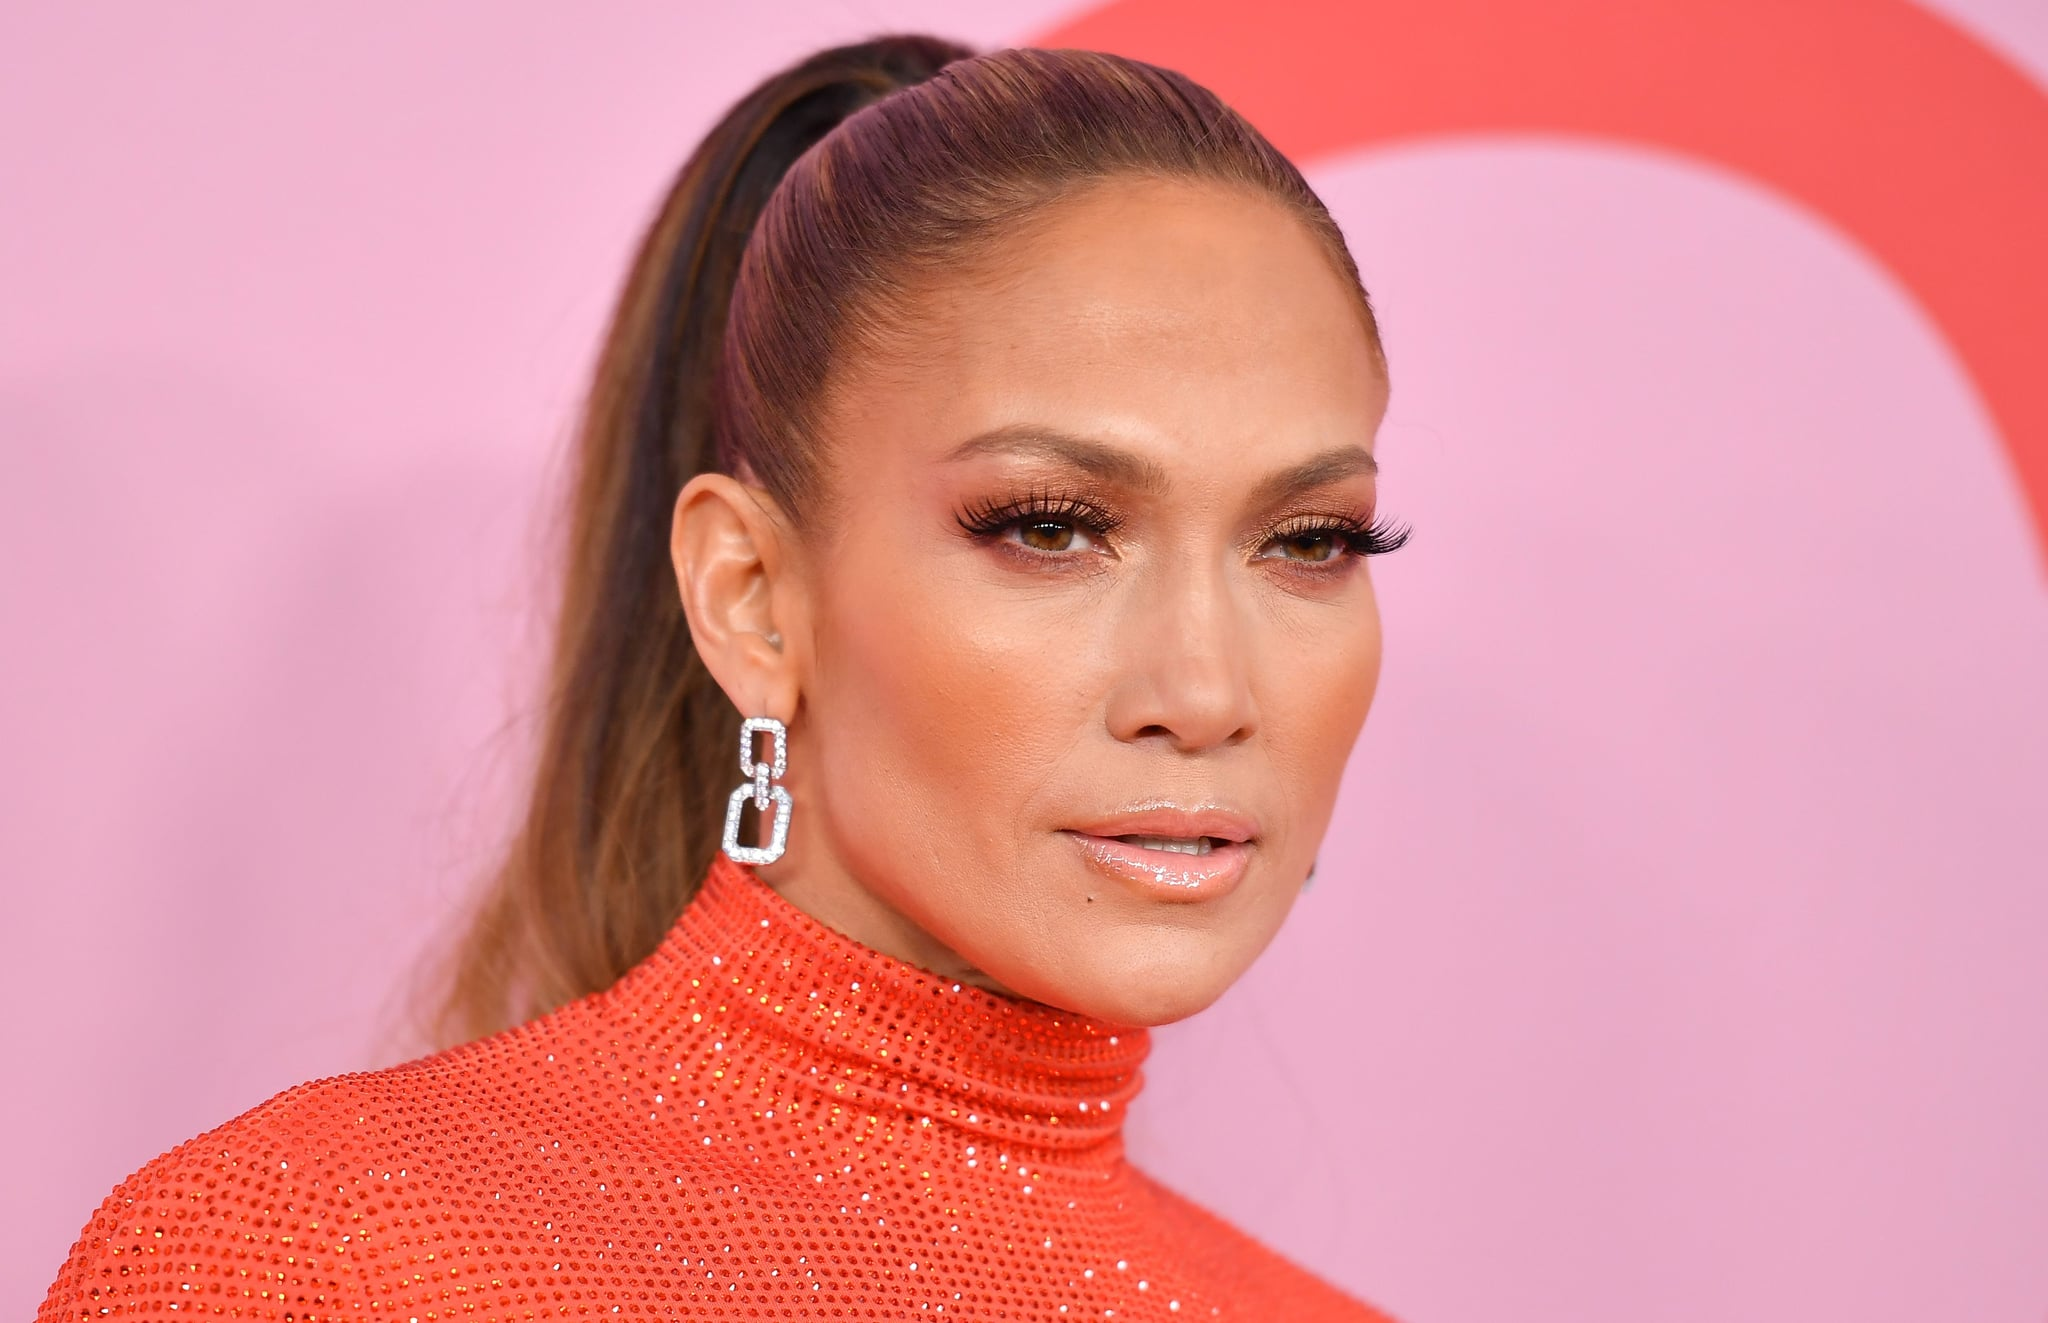 CFDA Fashion Icon Award recipient US singer Jennifer Lopez arrives for the 2019 CFDA fashion awards at the Brooklyn Museum in New York City on June 3, 2019. (Photo by ANGELA  WEISS / AFP)        (Photo credit should read ANGELA  WEISS/AFP via Getty Images)